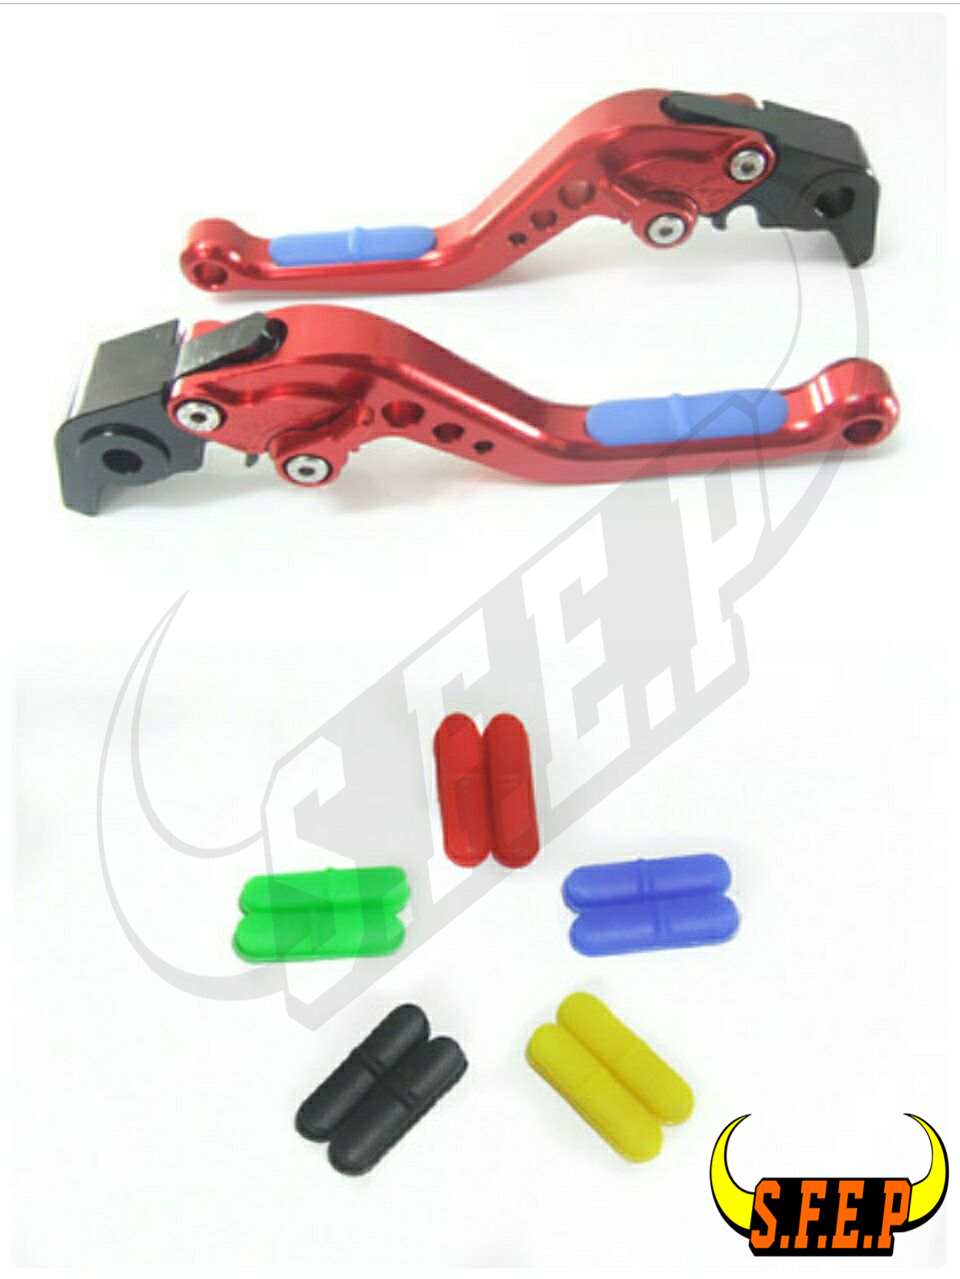 CNC Adjustable Motorcycle Brake and Clutch Levers with Anti-Slip For Triumph DAYTONA 955i 1997-2003